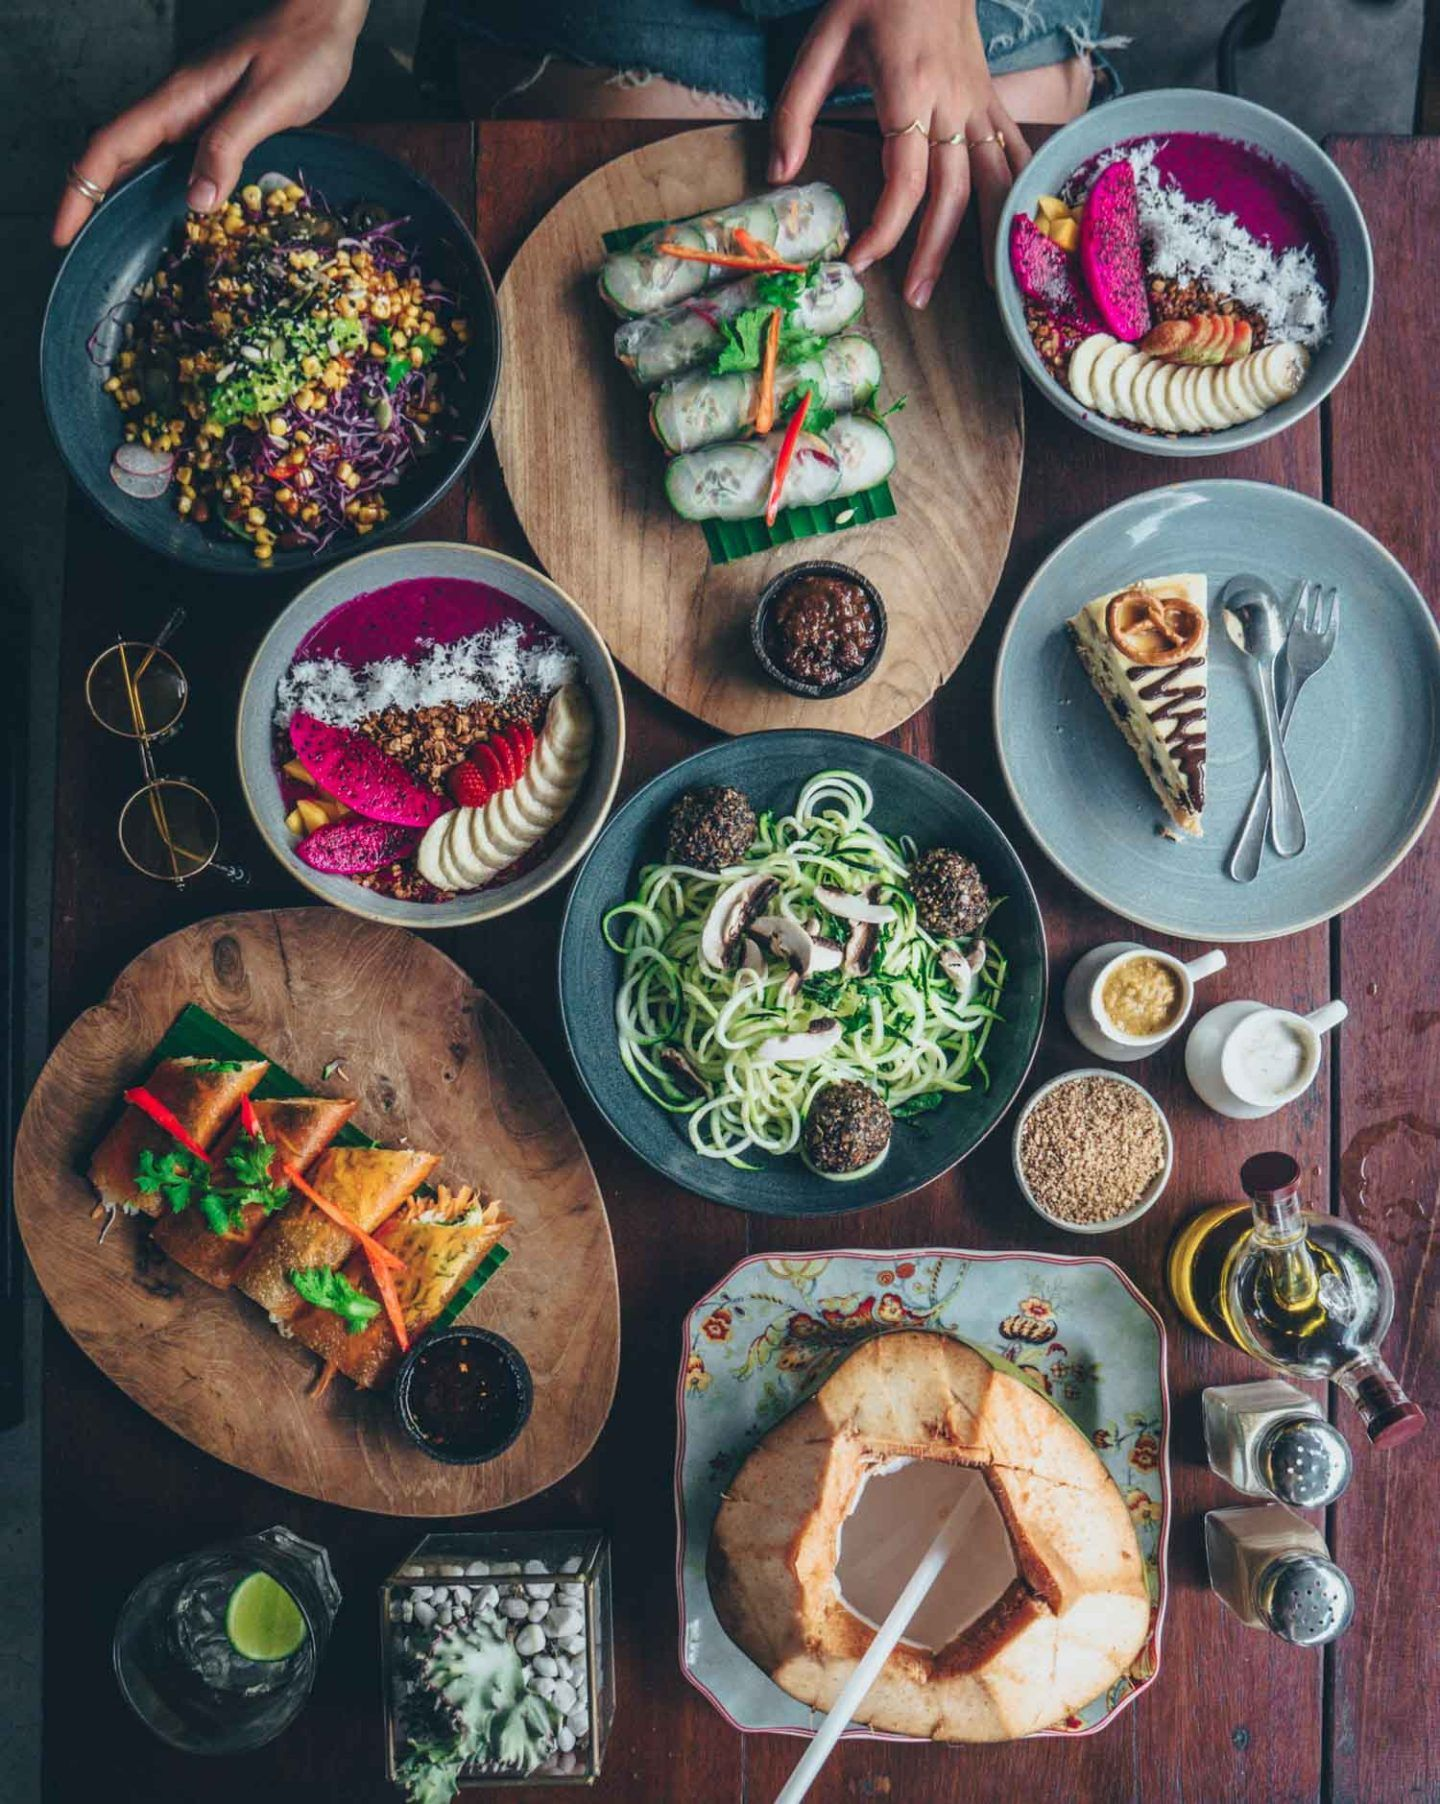 Best Vegan Friendly Bali Restaurants For Perfect Instagram